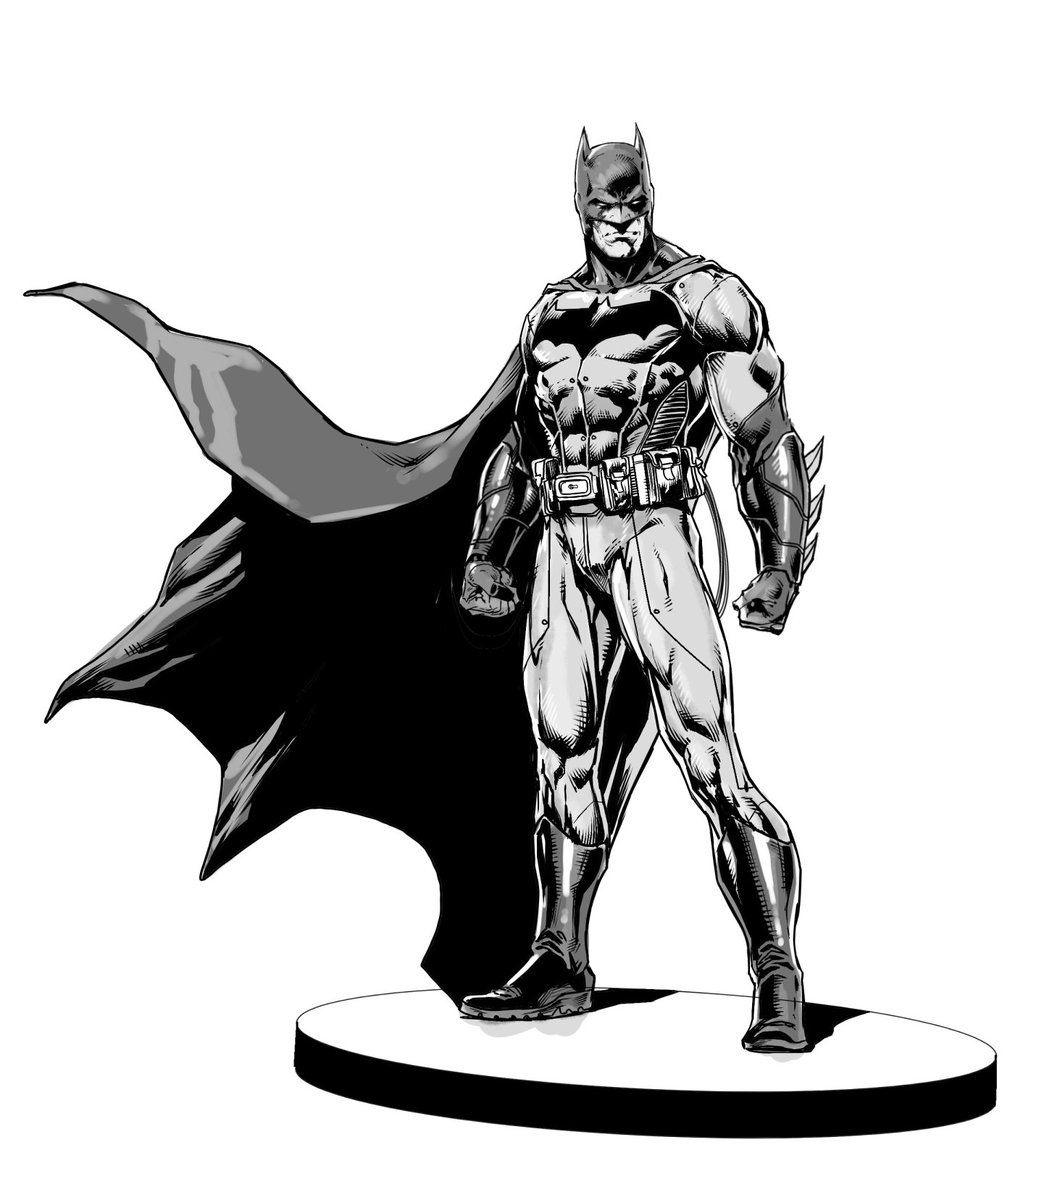 1052x1200 Jason Fabok On Twitter My Batman Black And White Statue Design